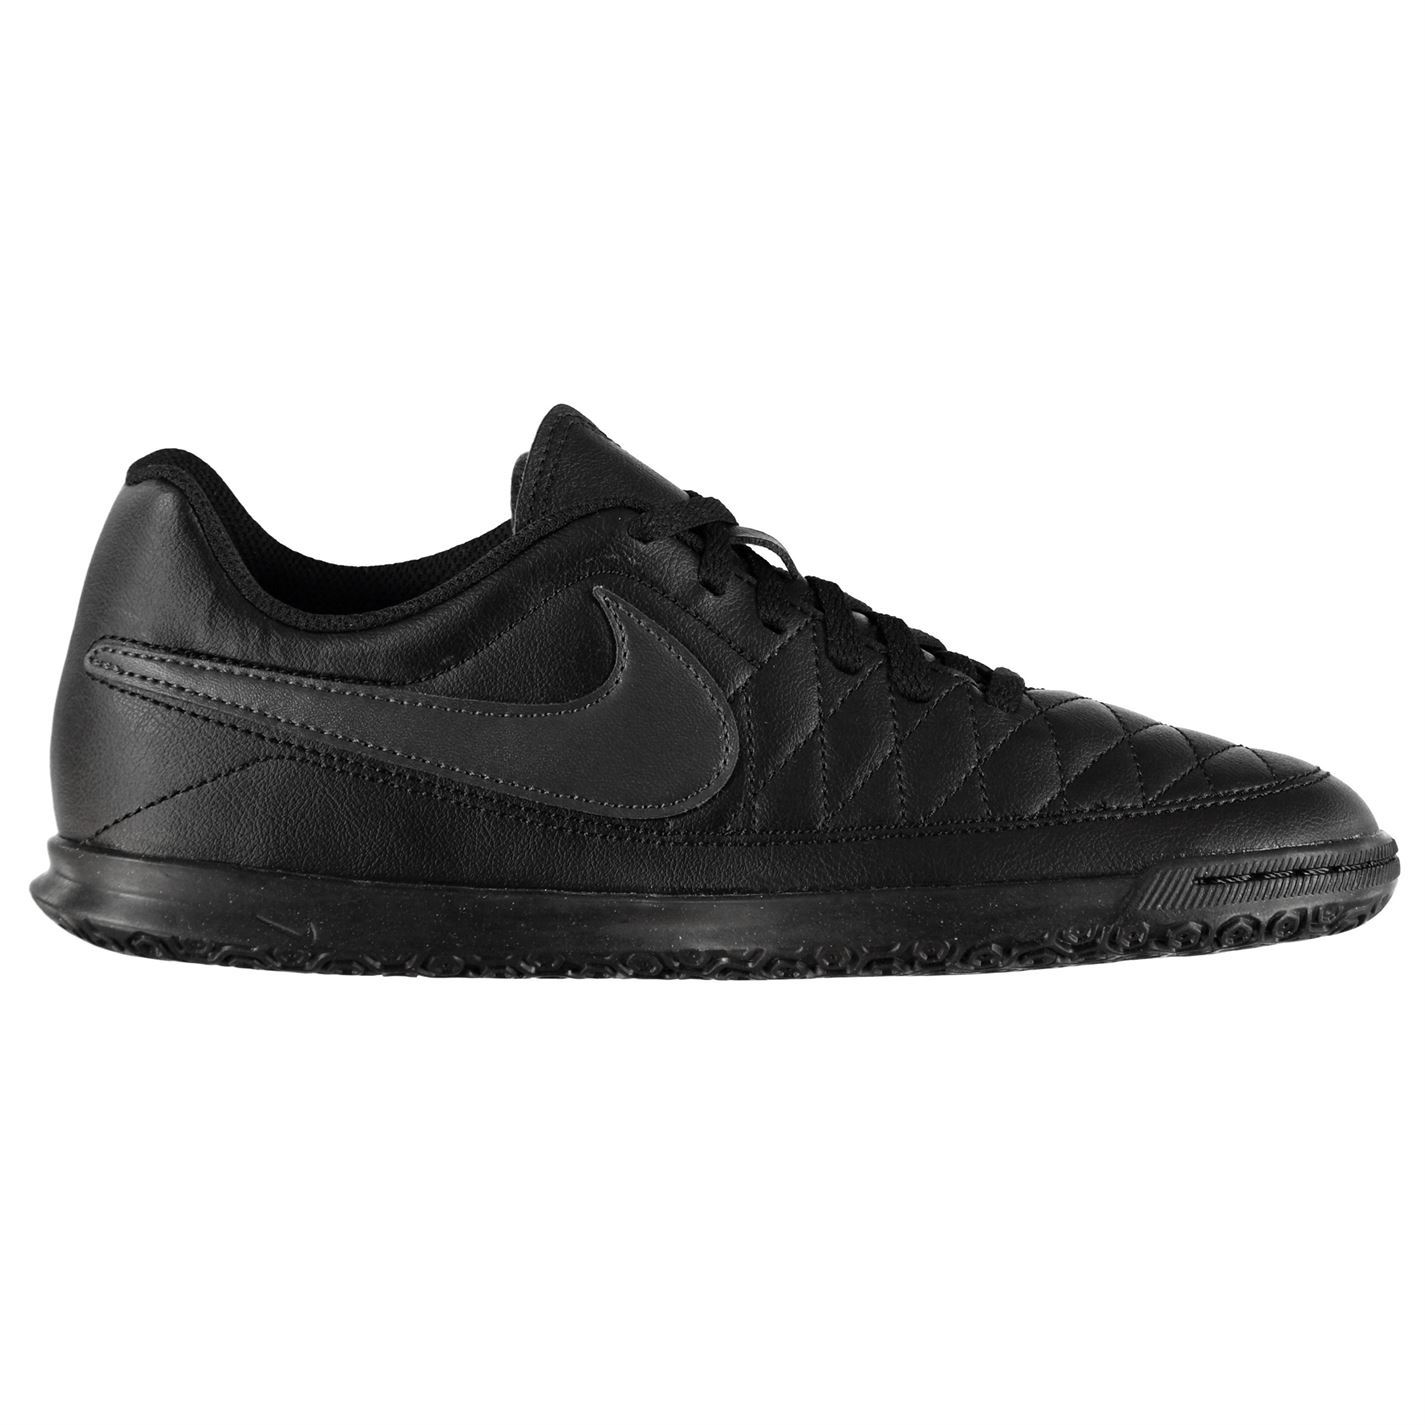 Nike-majestry-Indoor-Football-Baskets-Pour-Homme-Football-Futsal-Chaussures-Baskets-Bottes miniature 12